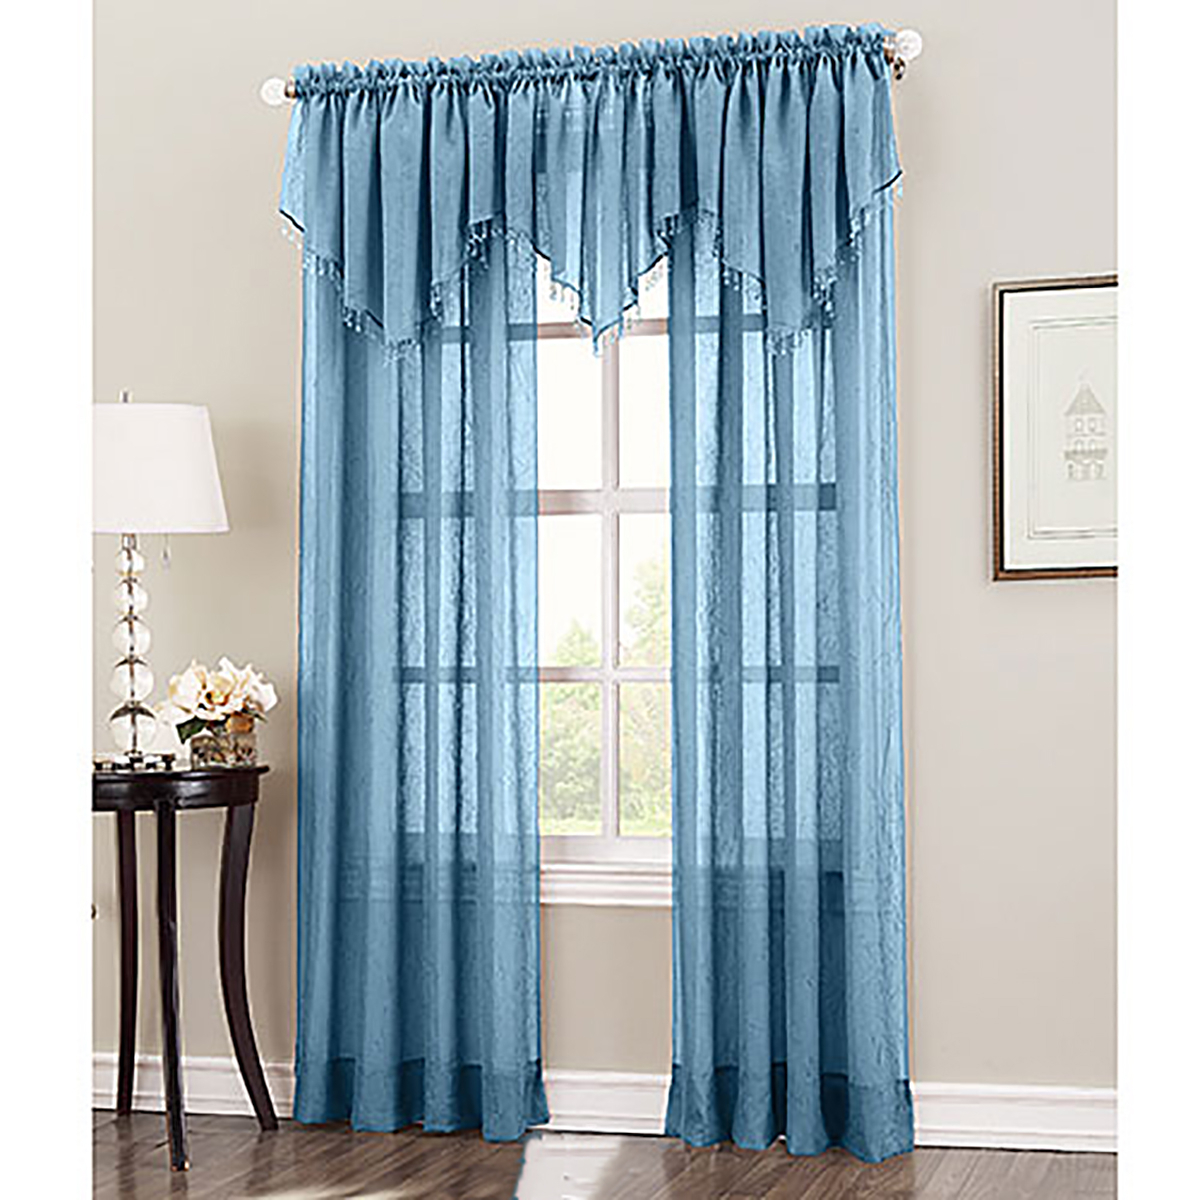 Erica Crushed Voile Curtain Panel Pertaining To Erica Sheer Crushed Voile Single Curtain Panels (View 6 of 20)